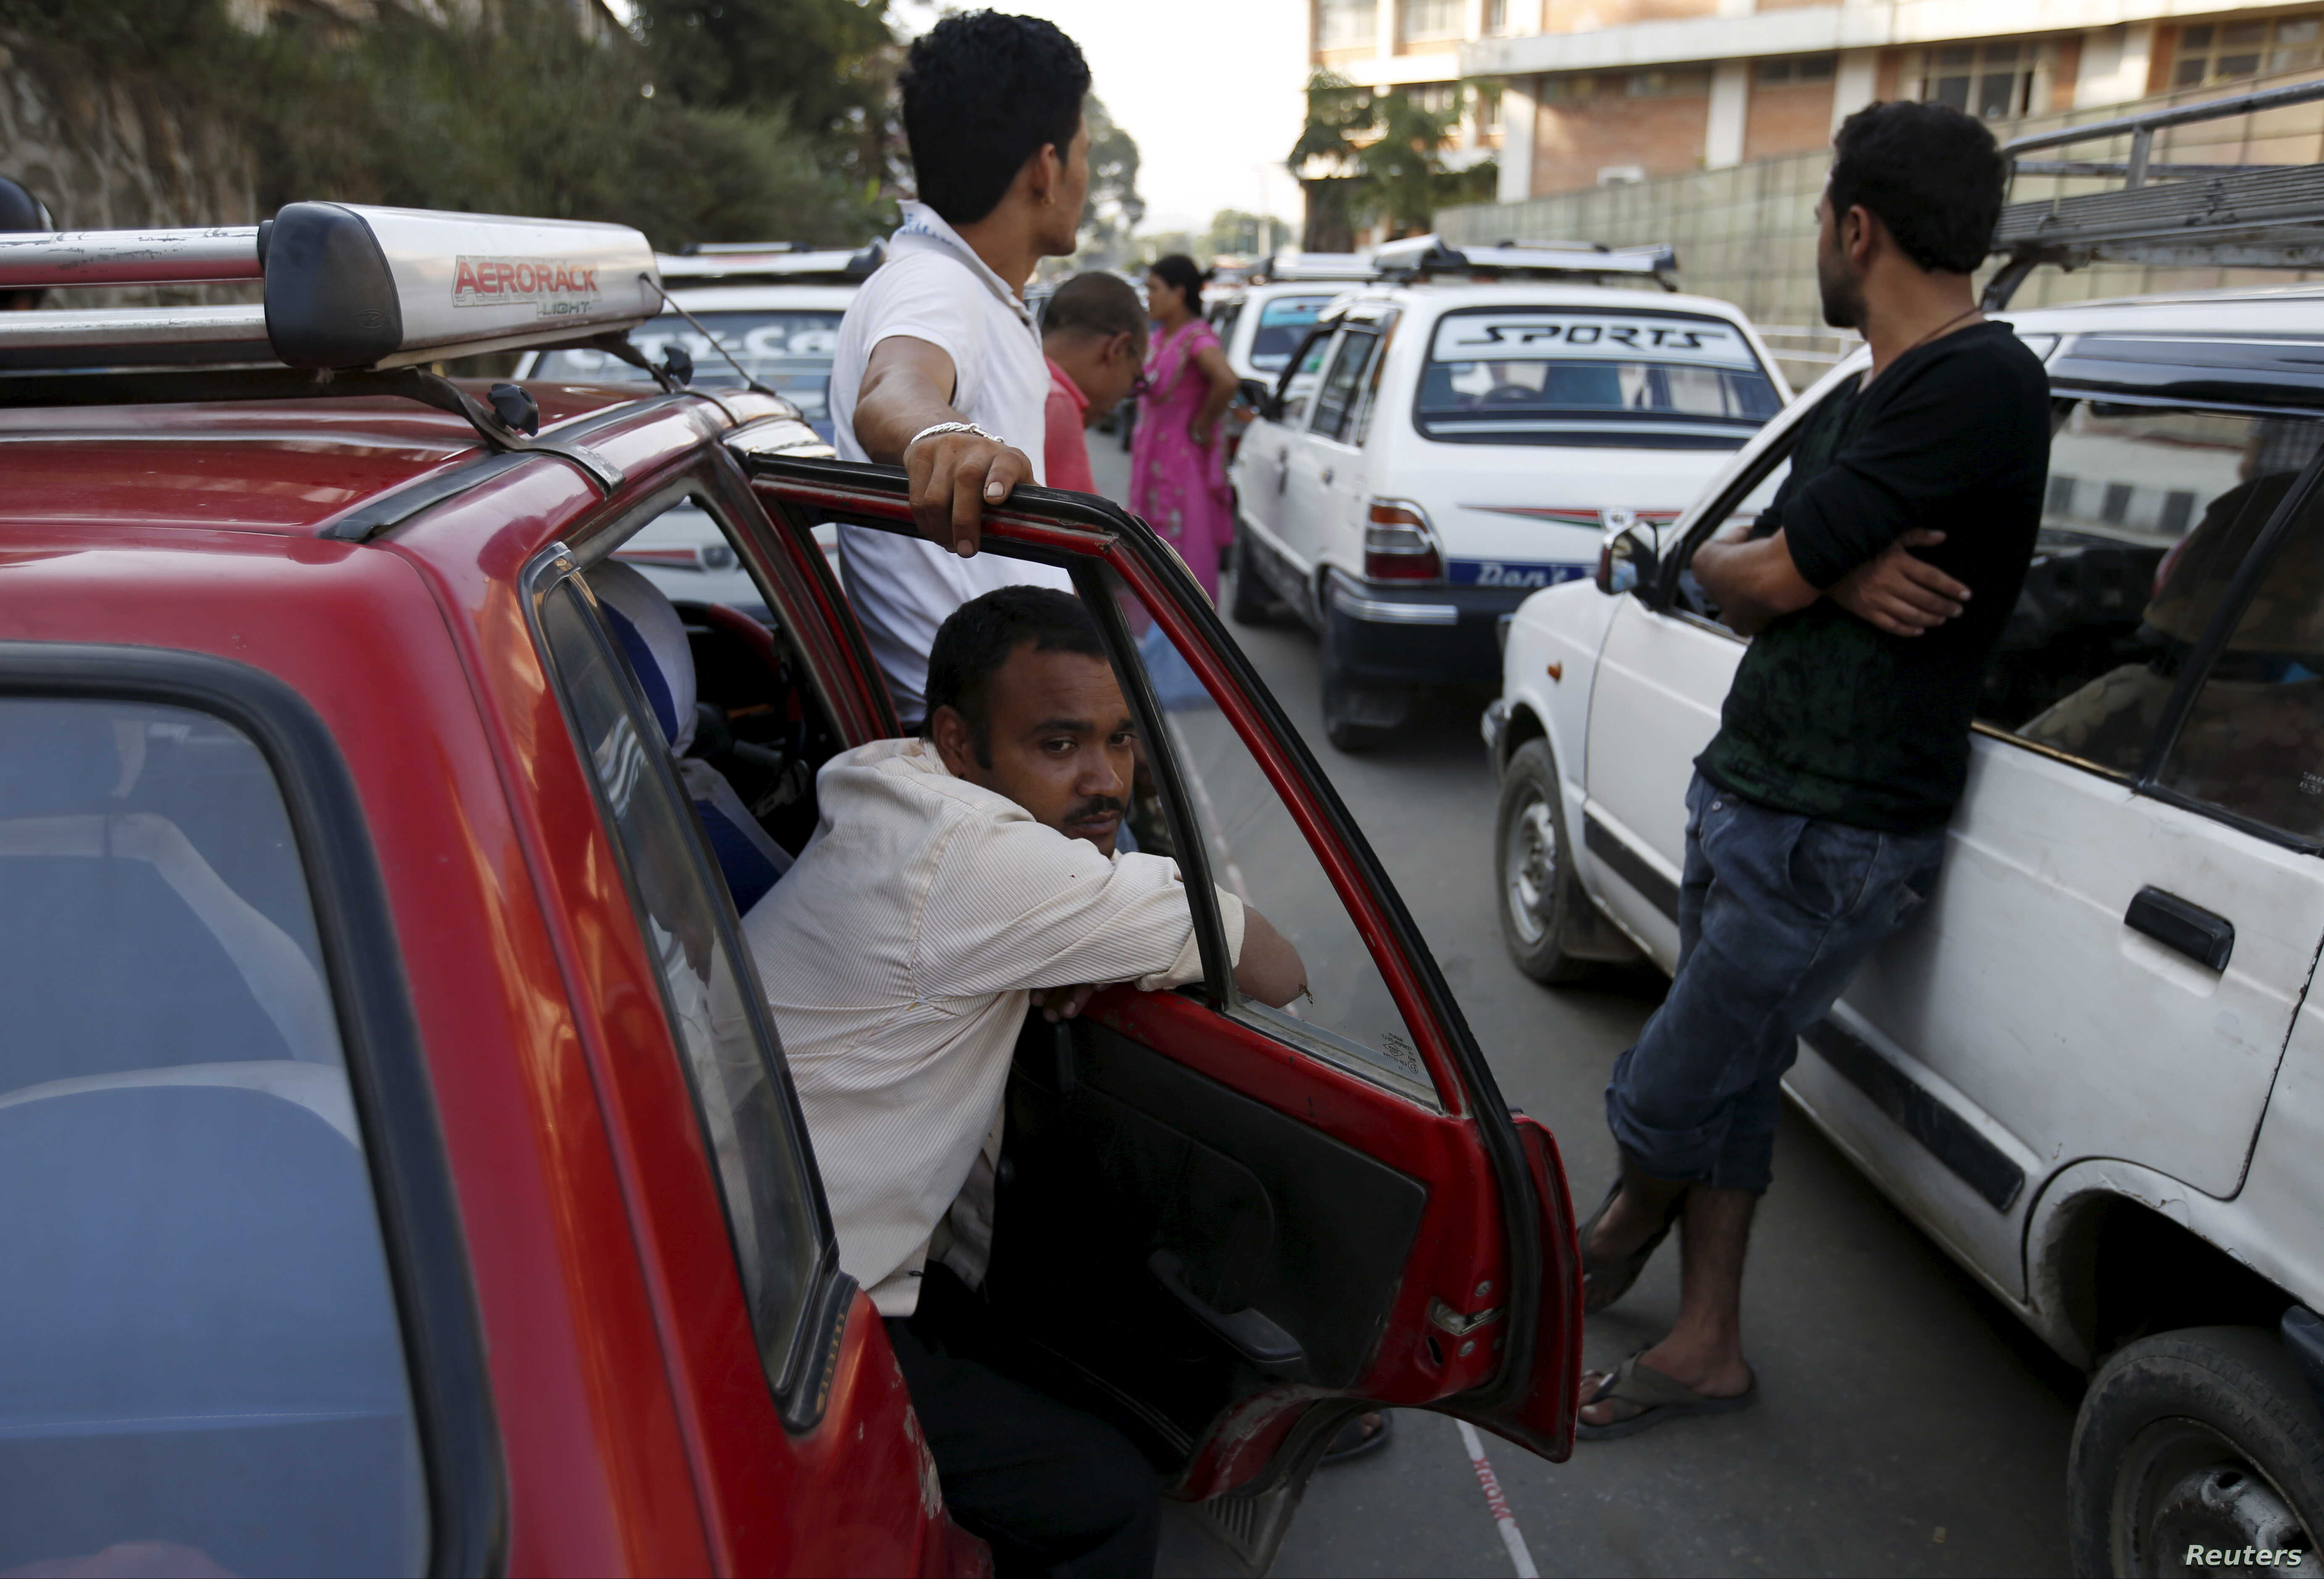 Drivers wait in a line to fill up their vehicles with fuel near a gasoline pump as the fuel crisis continues in Kathmandu, Nepal, Oct. 1, 2015.